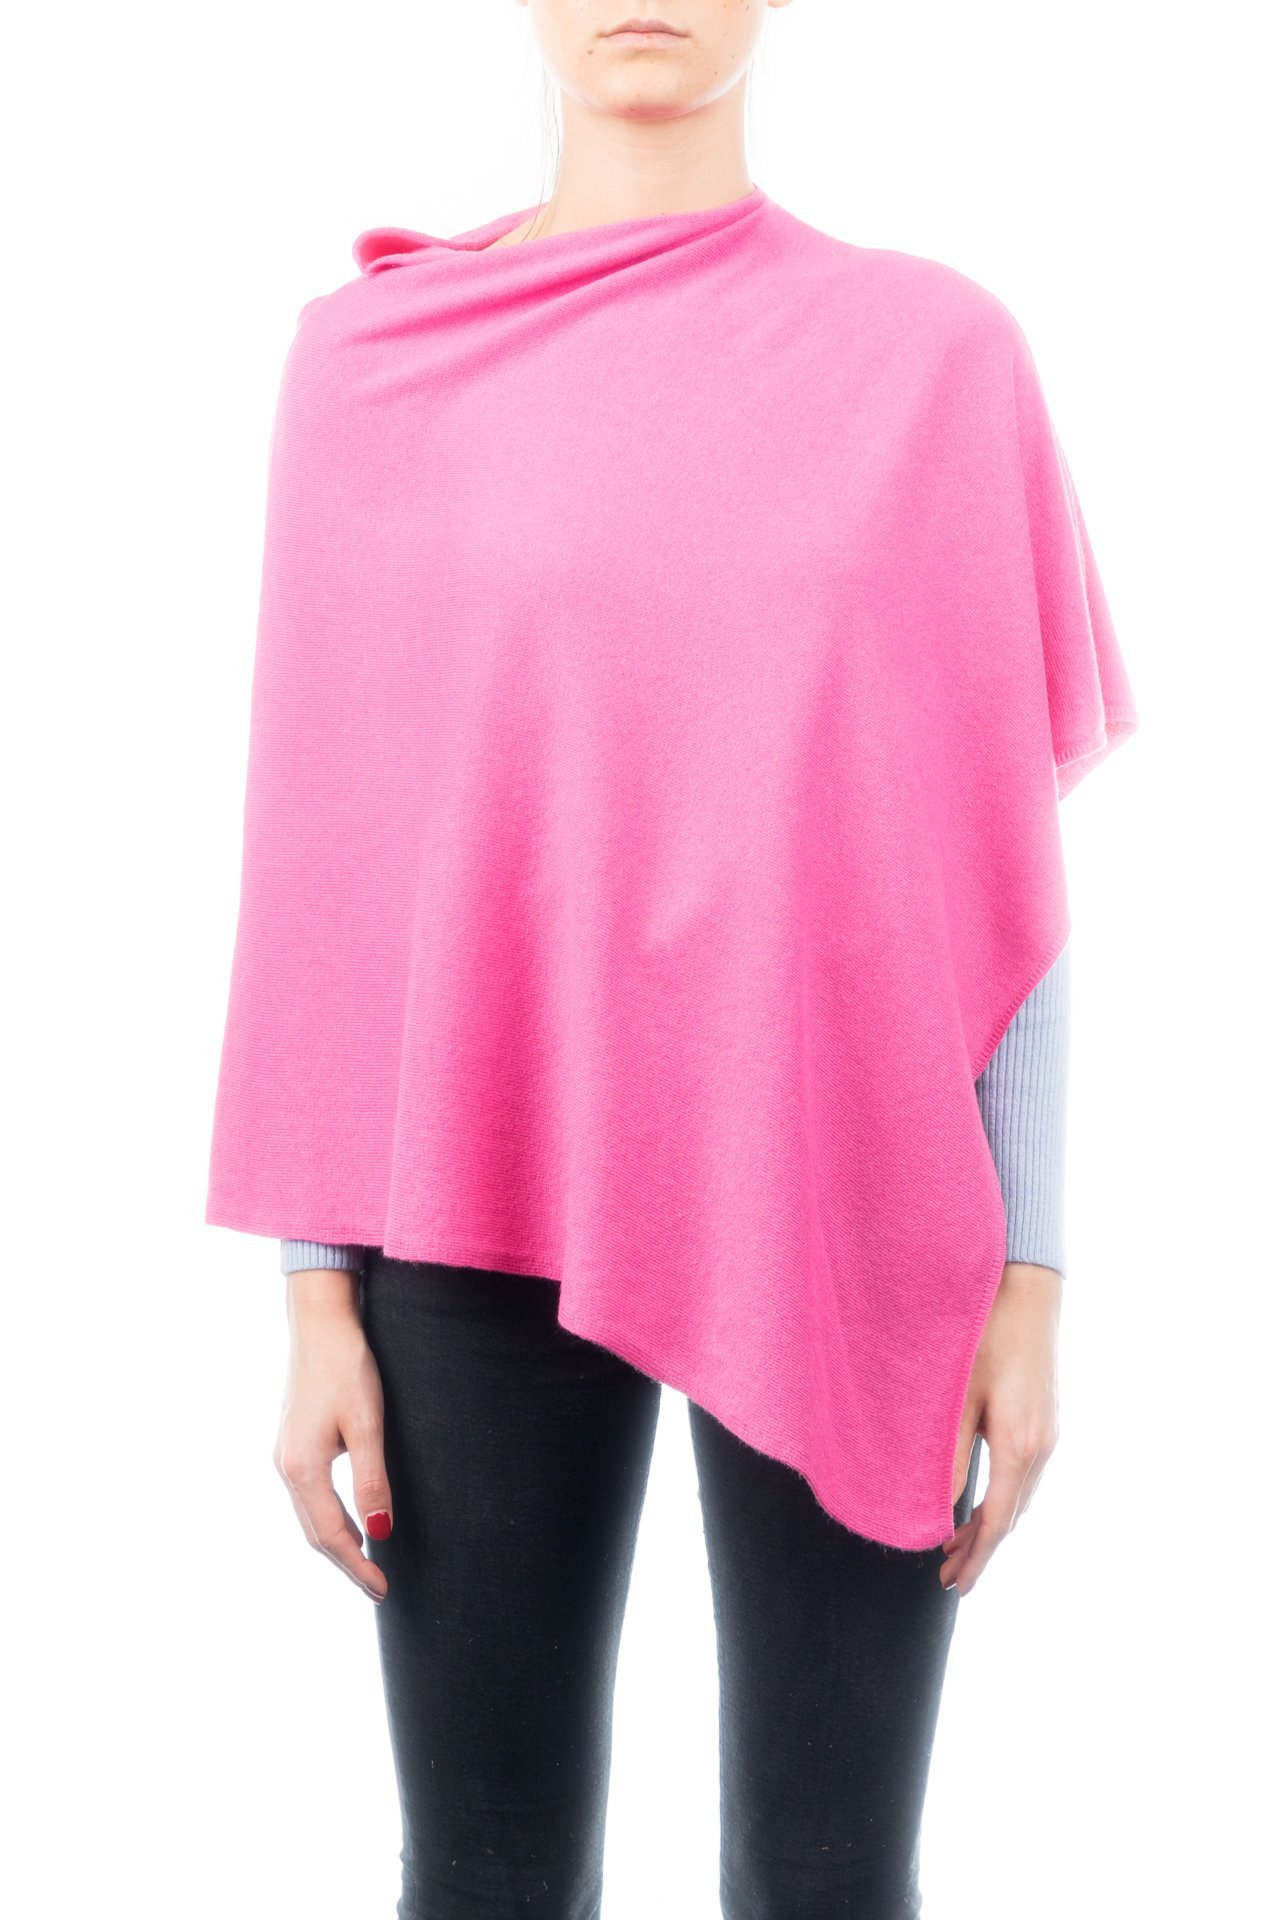 DALLE PIANE CASHMERE - Poncho Cashmere Blend - Made in Italy, Color: Fuxia, One Size